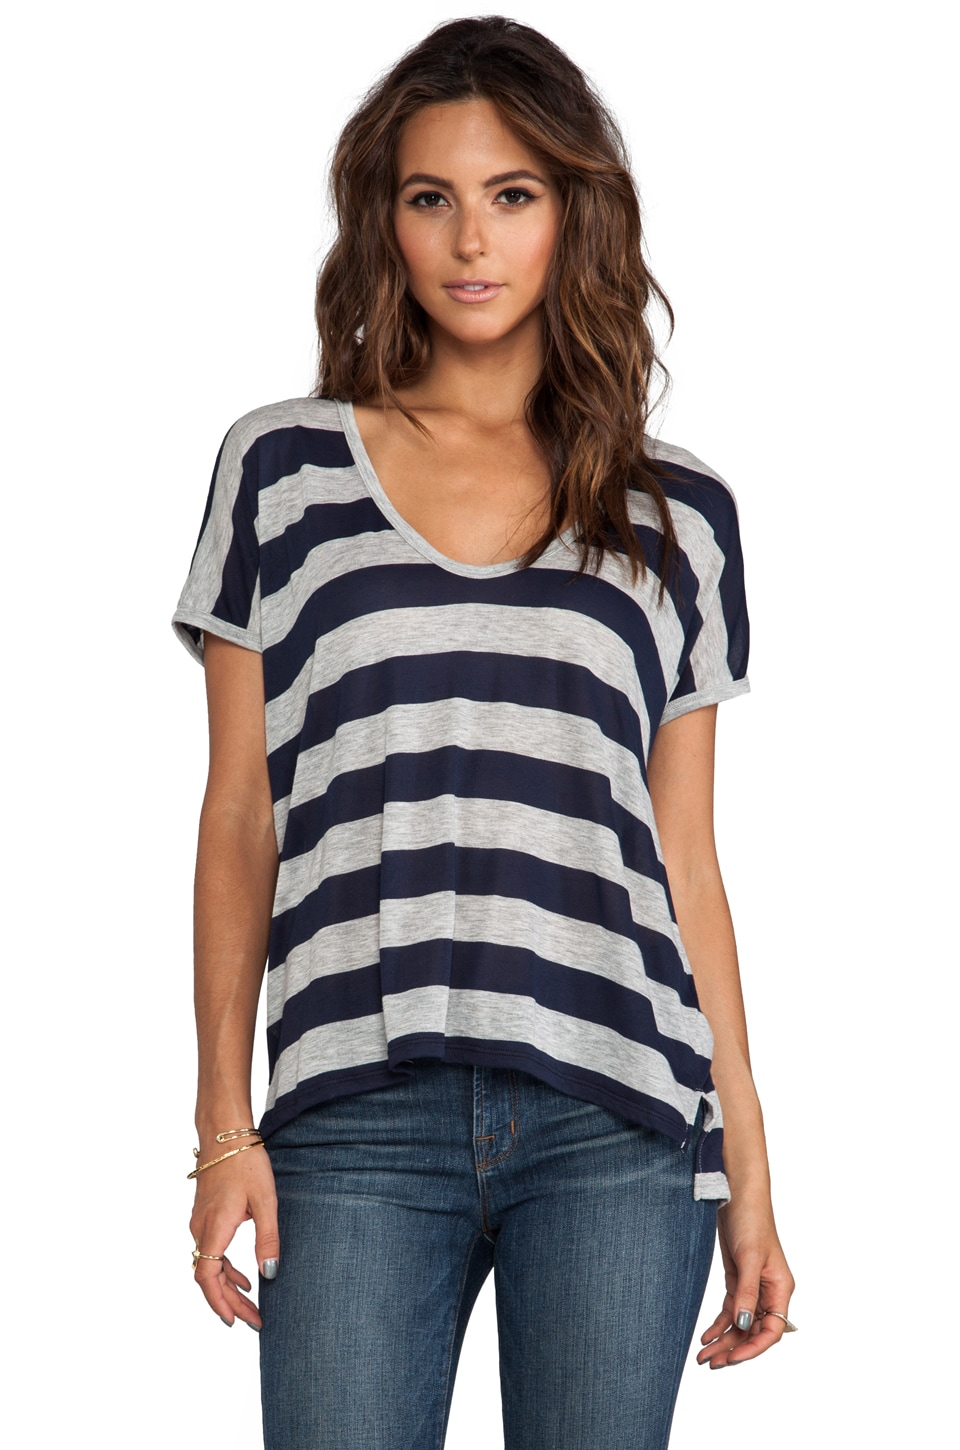 James Perse Camper Stripe Tee in Navy/Heather Grey